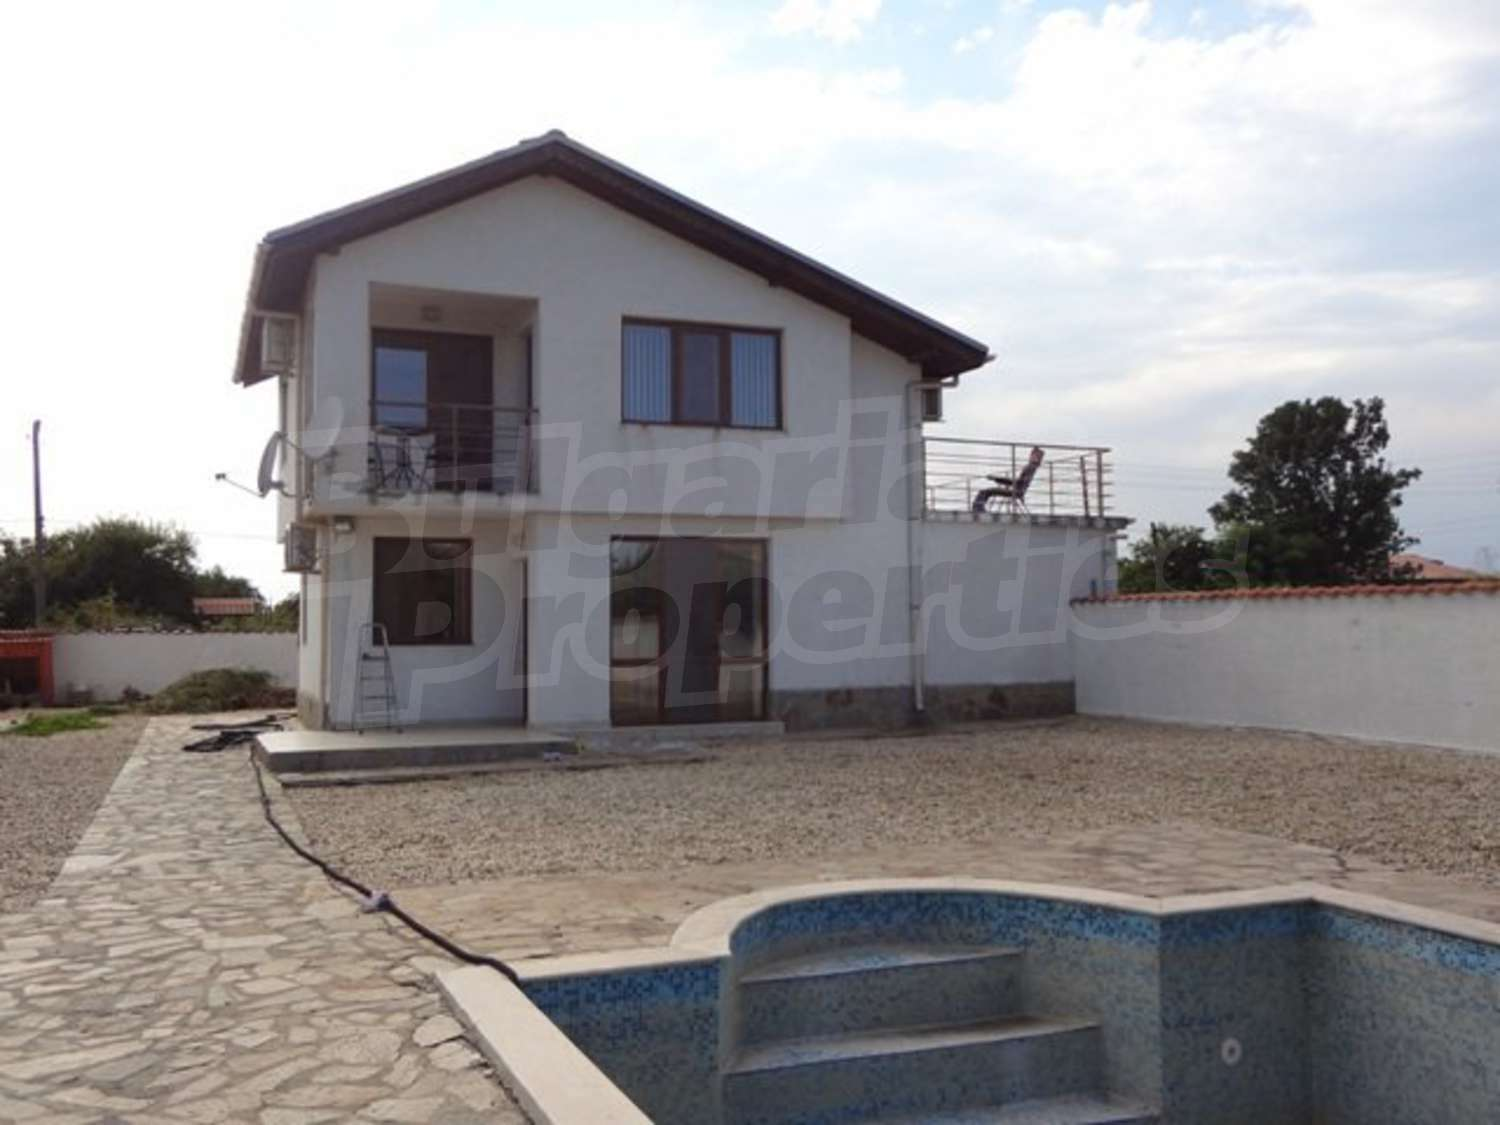 House for sale near burgas bulgaria new house with a for Big house for sale with swimming pool